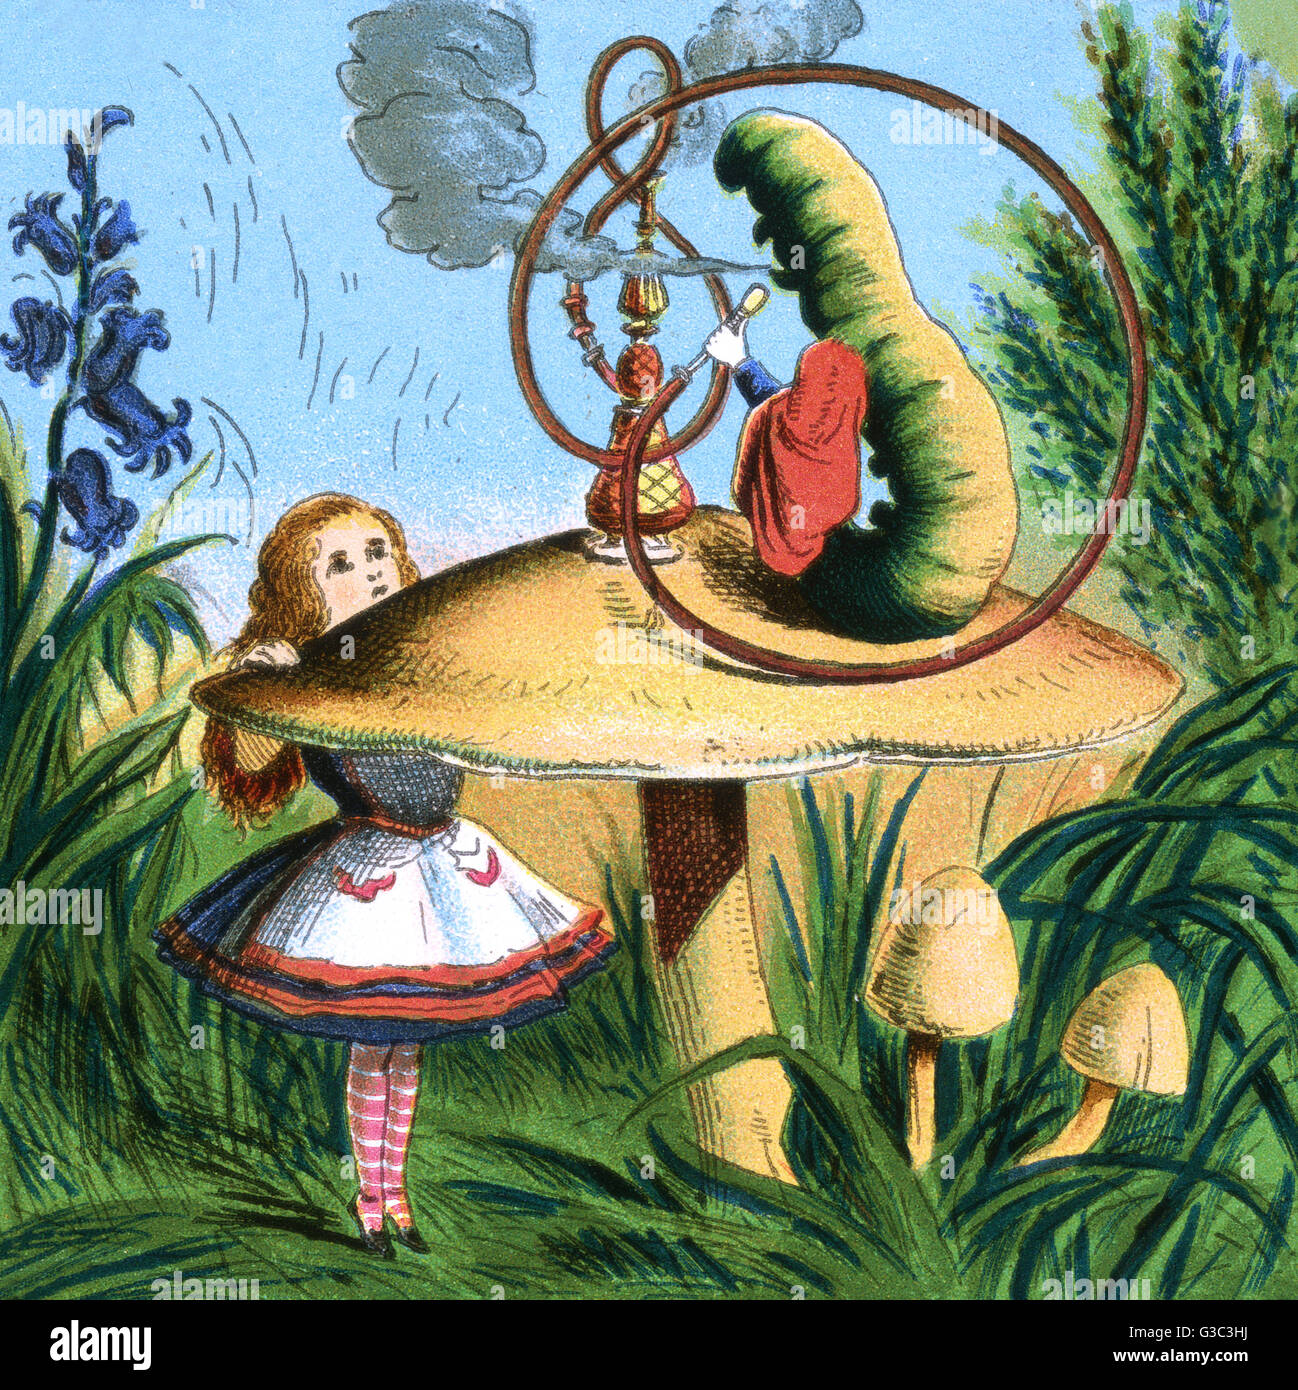 the caterpillar sitting on a mushroom at an alice in wonderland